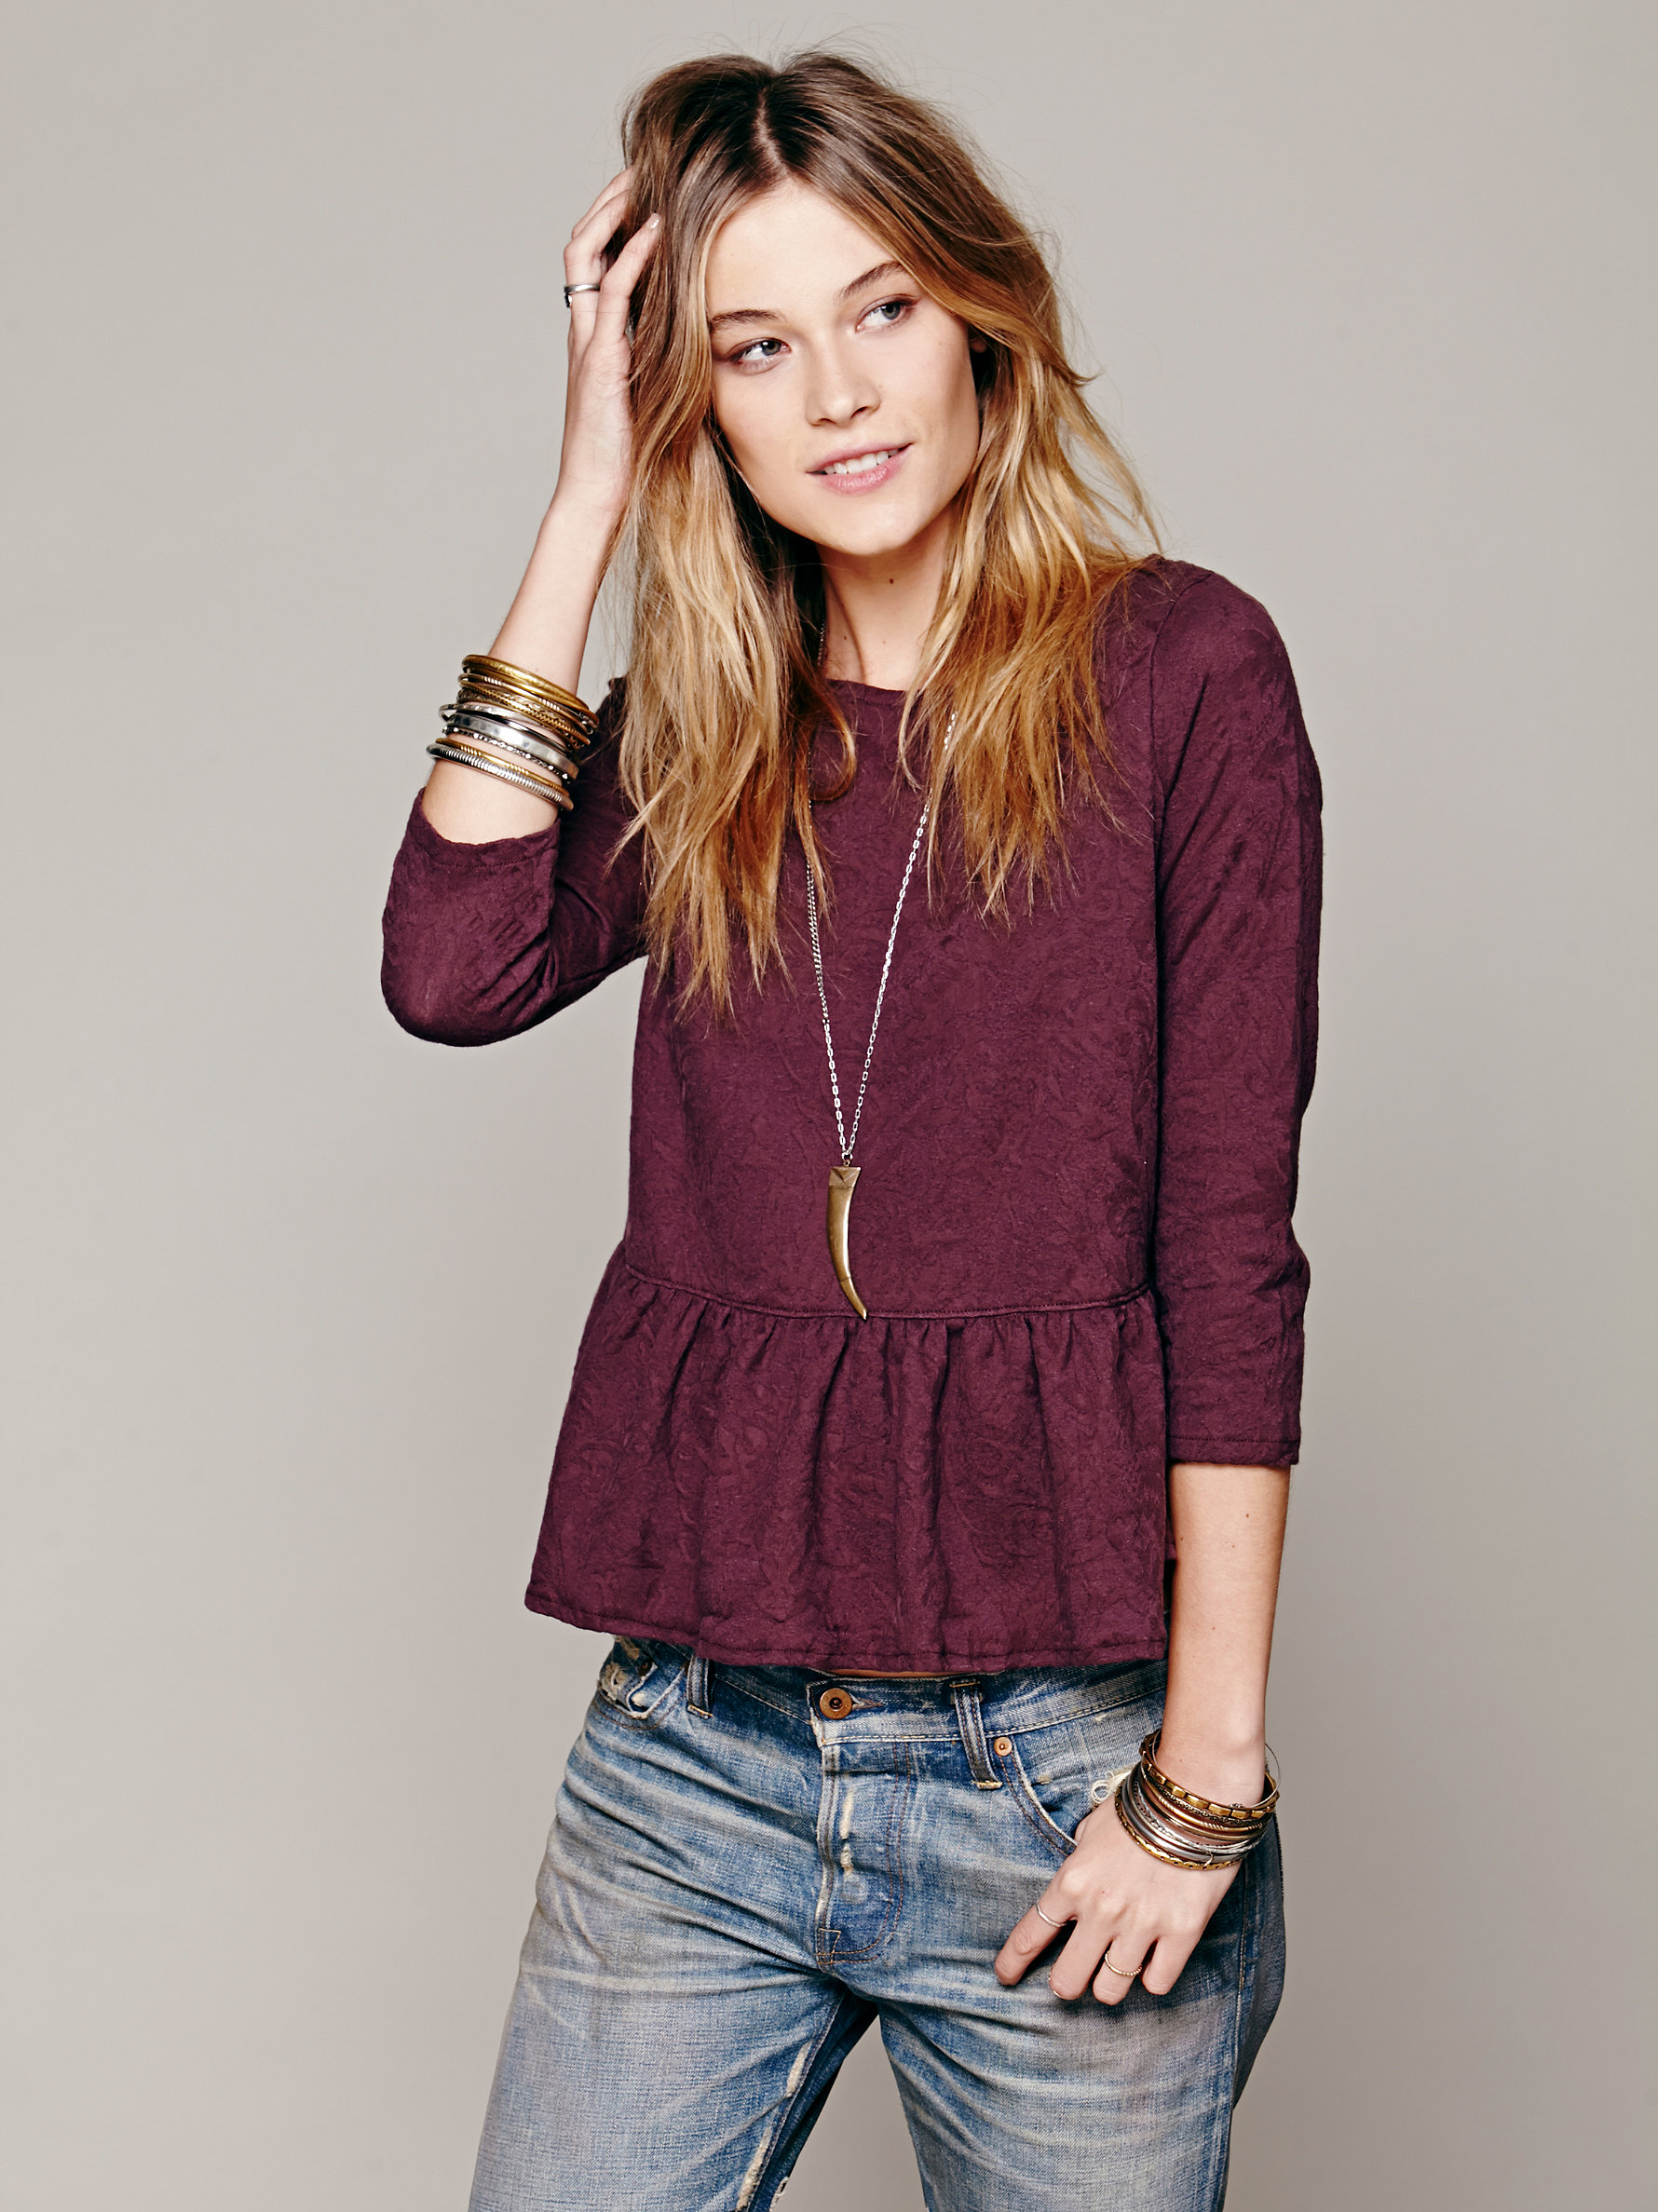 Free People Womens Textured Boxy Peplum Top | Pinterest Picks - Pretty Blouses to Feast In